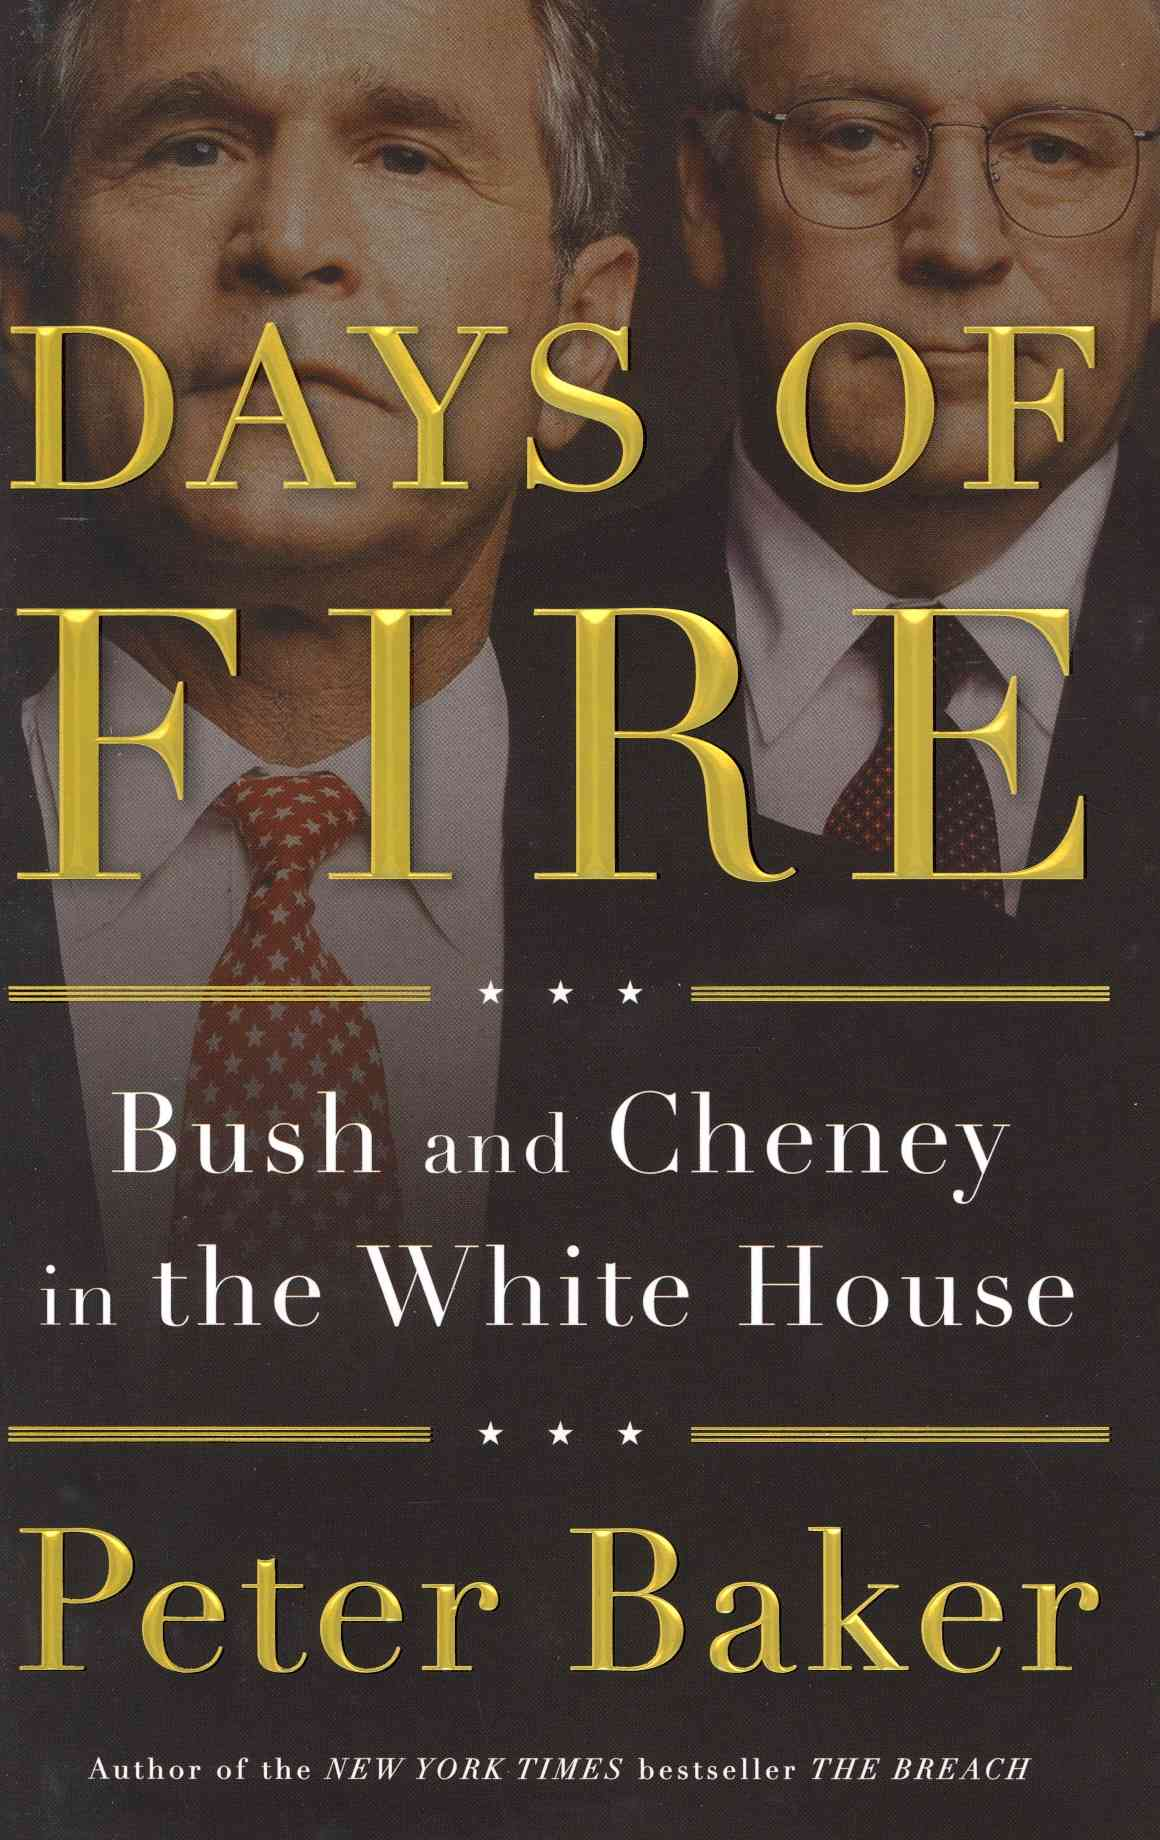 Days of Fire: Bush and Cheney in the White House (Hardcover)